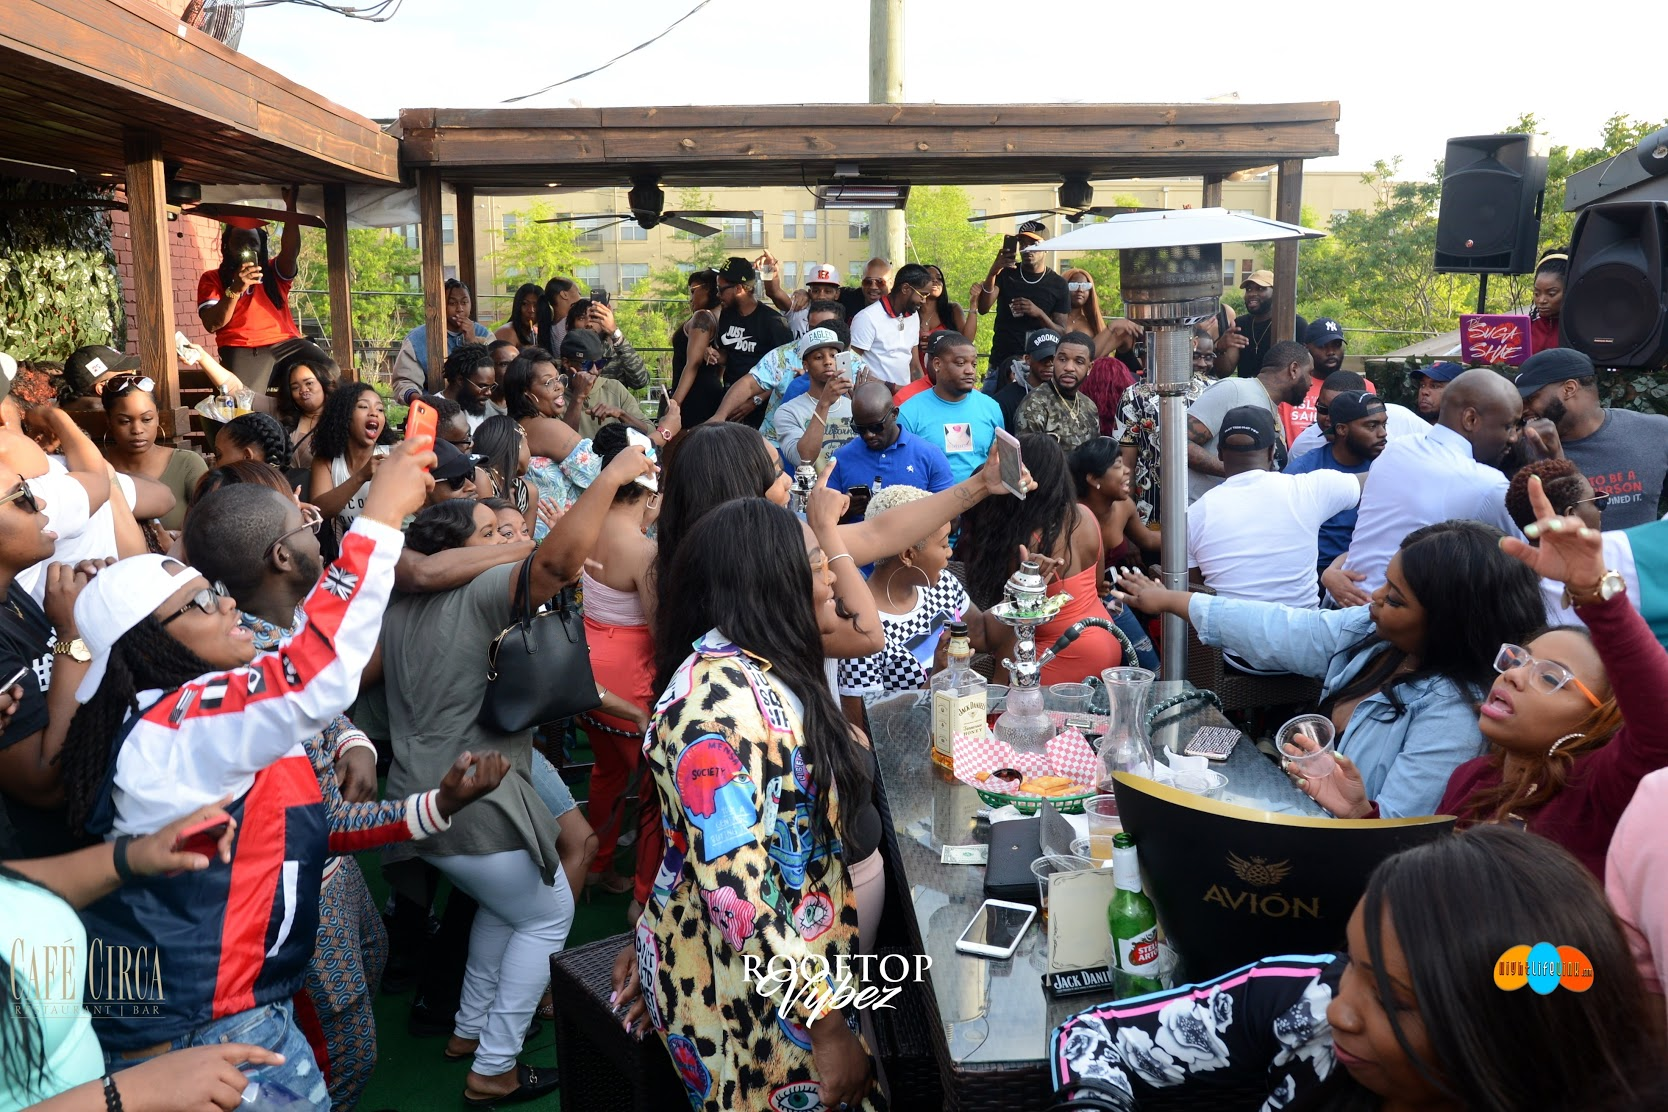 714877a7e61 ... ROOFTOP) WELL AS LADIES FAVORITE ON EDGEWOOD   CAFE CIRCA FULL KITCHEN  MENU HOOKAH   BOTTLE SPECIALS ALL DAY. TO CELEBRATE A BDAY OR BOOK A TABLE  ...